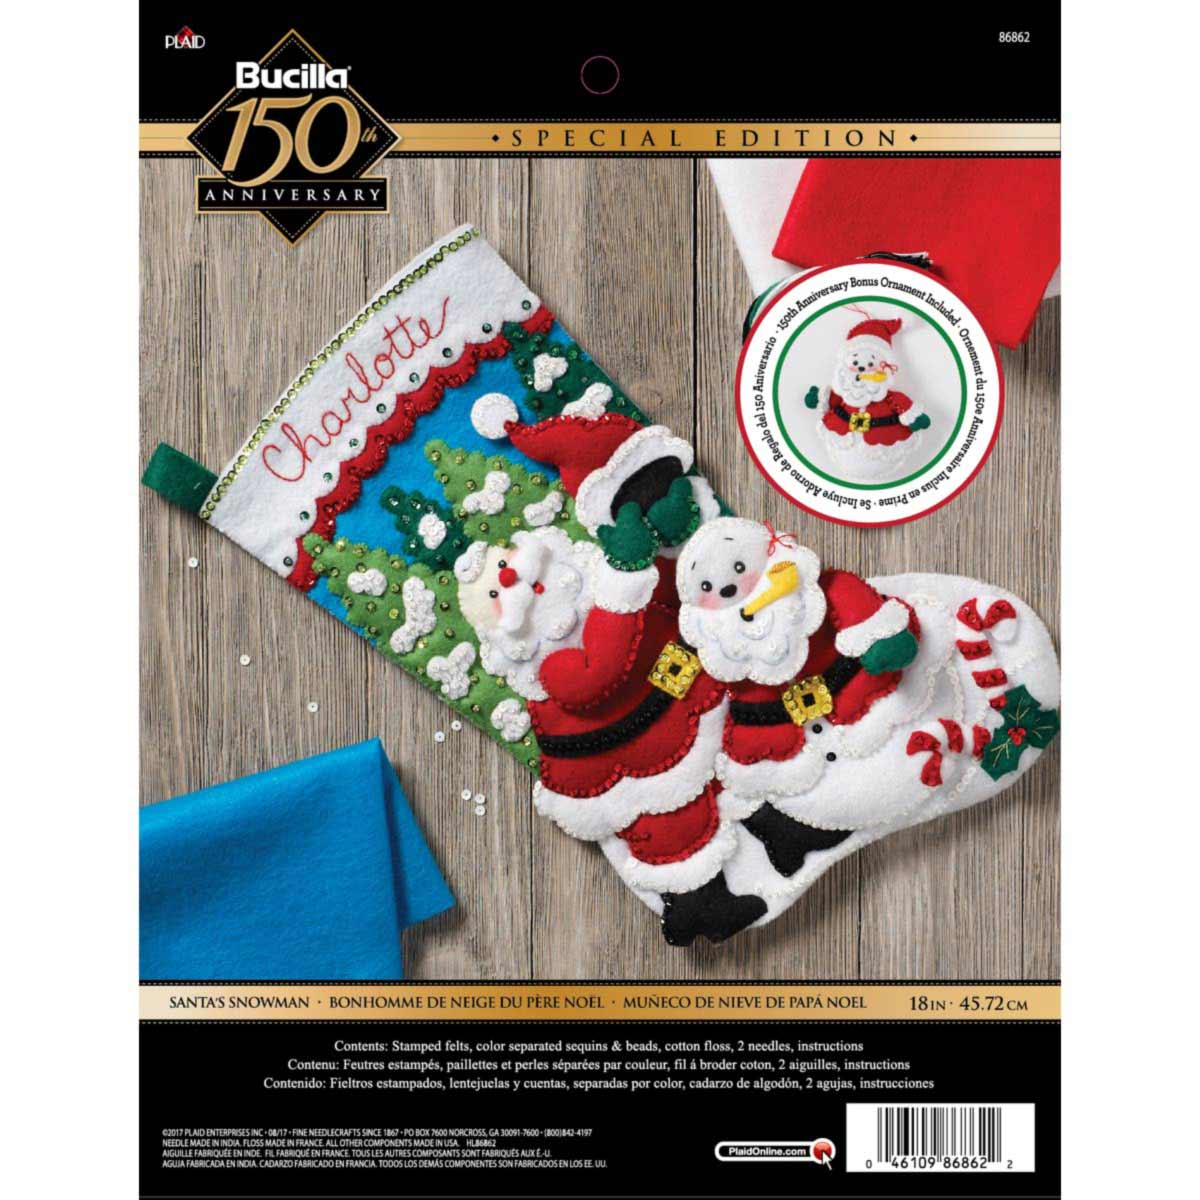 Bucilla ® Seasonal - Felt - Stocking Kits - Santa's Snowman - 86862